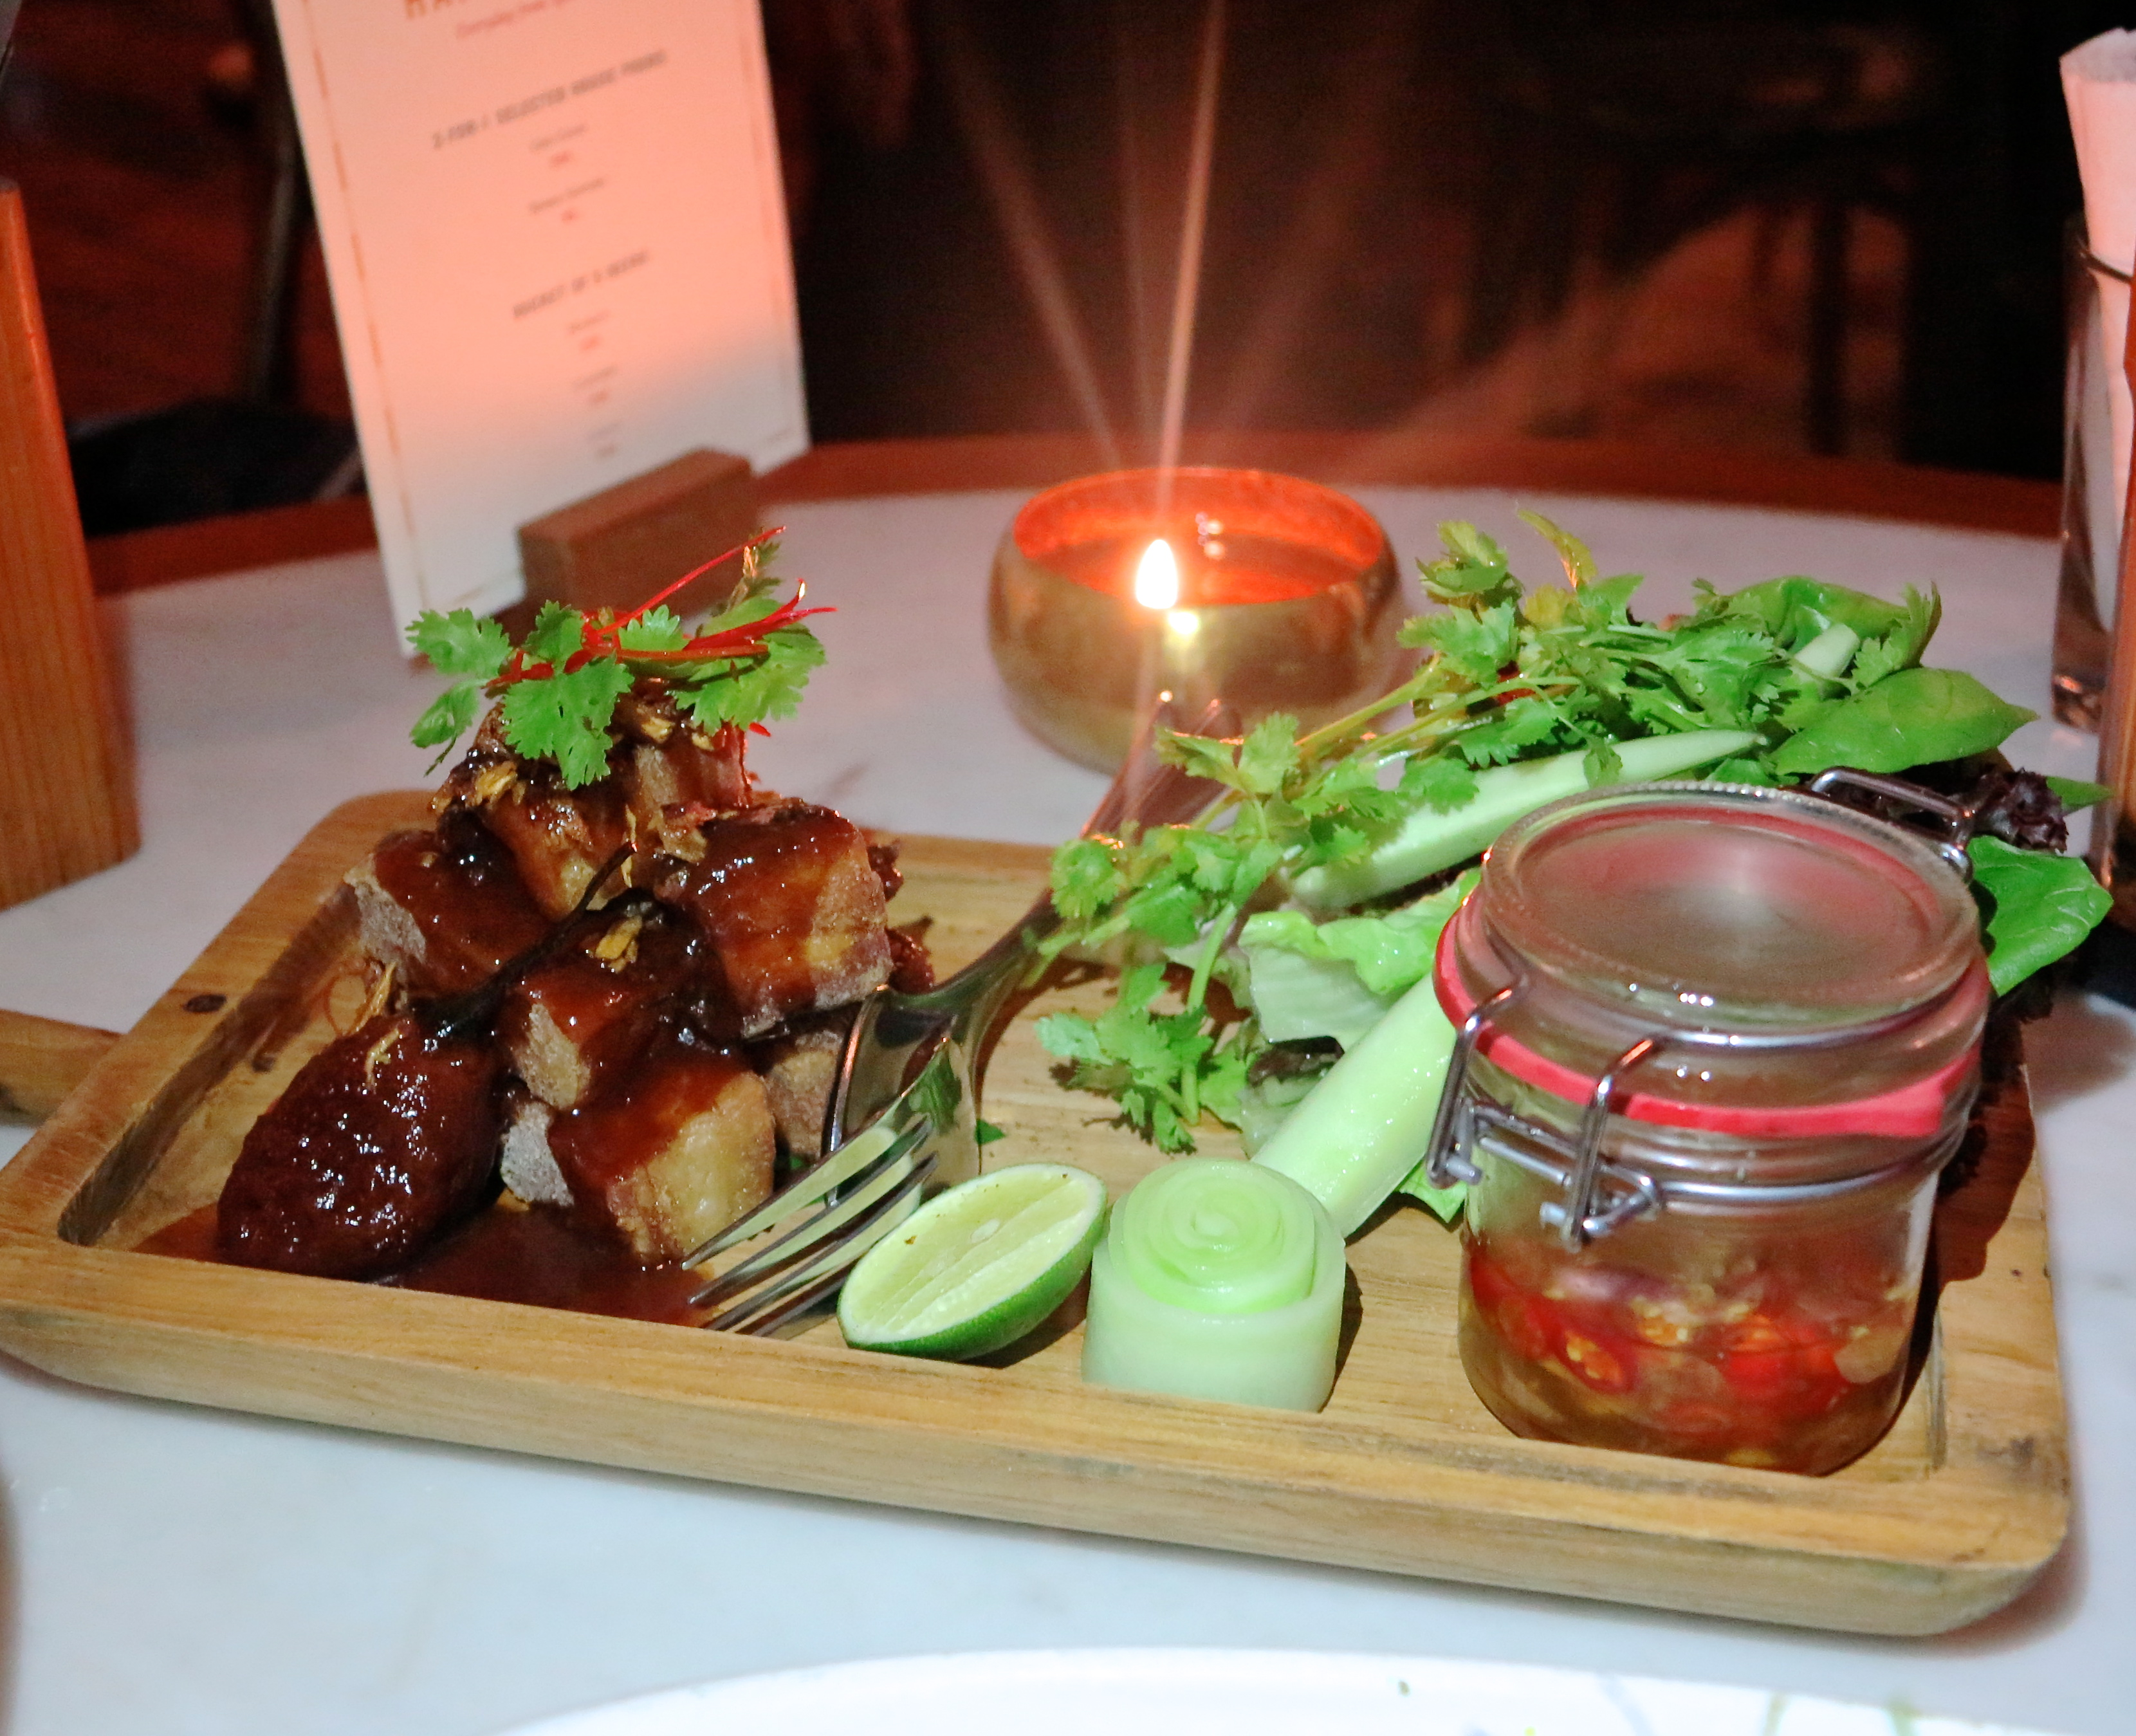 Crispy Pork Belly With Tamarillo And Tamarind Sauce